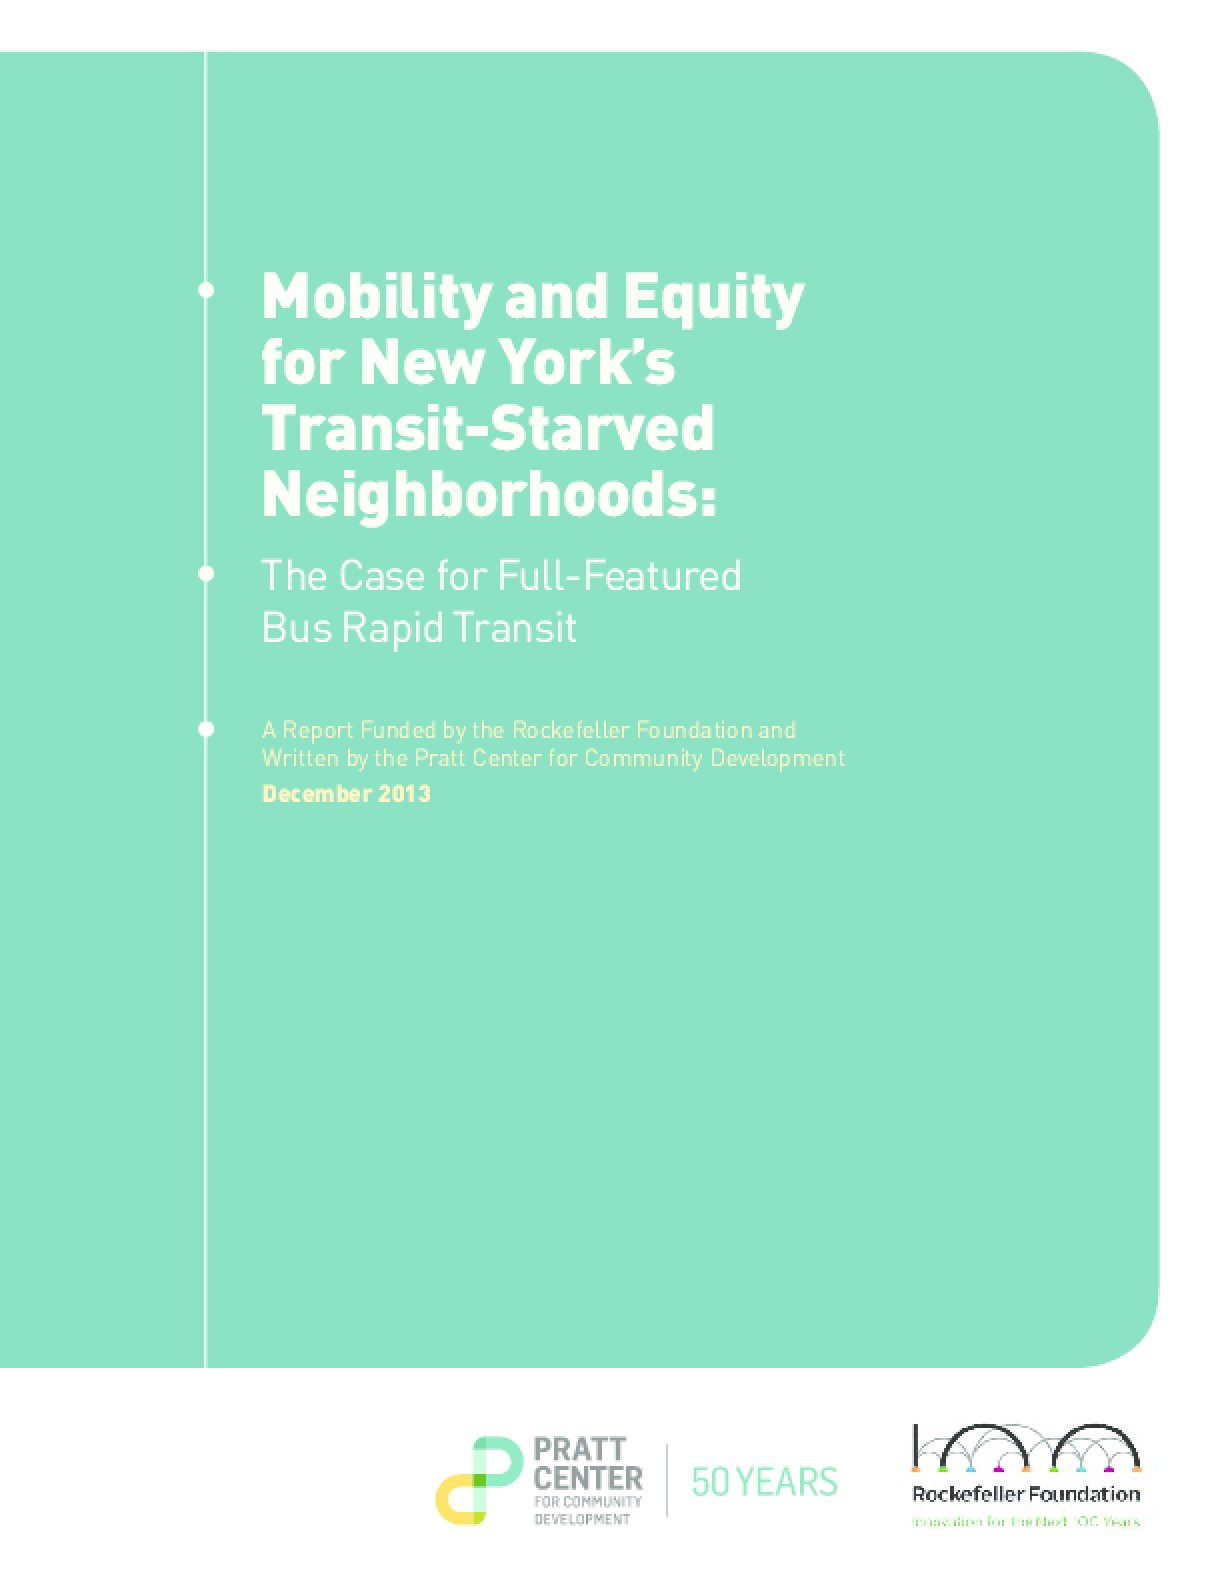 Mobility and Equity for New York's Transit-Starved Neighborhoods: The Case for Full-Featured Bus Rapid Transit